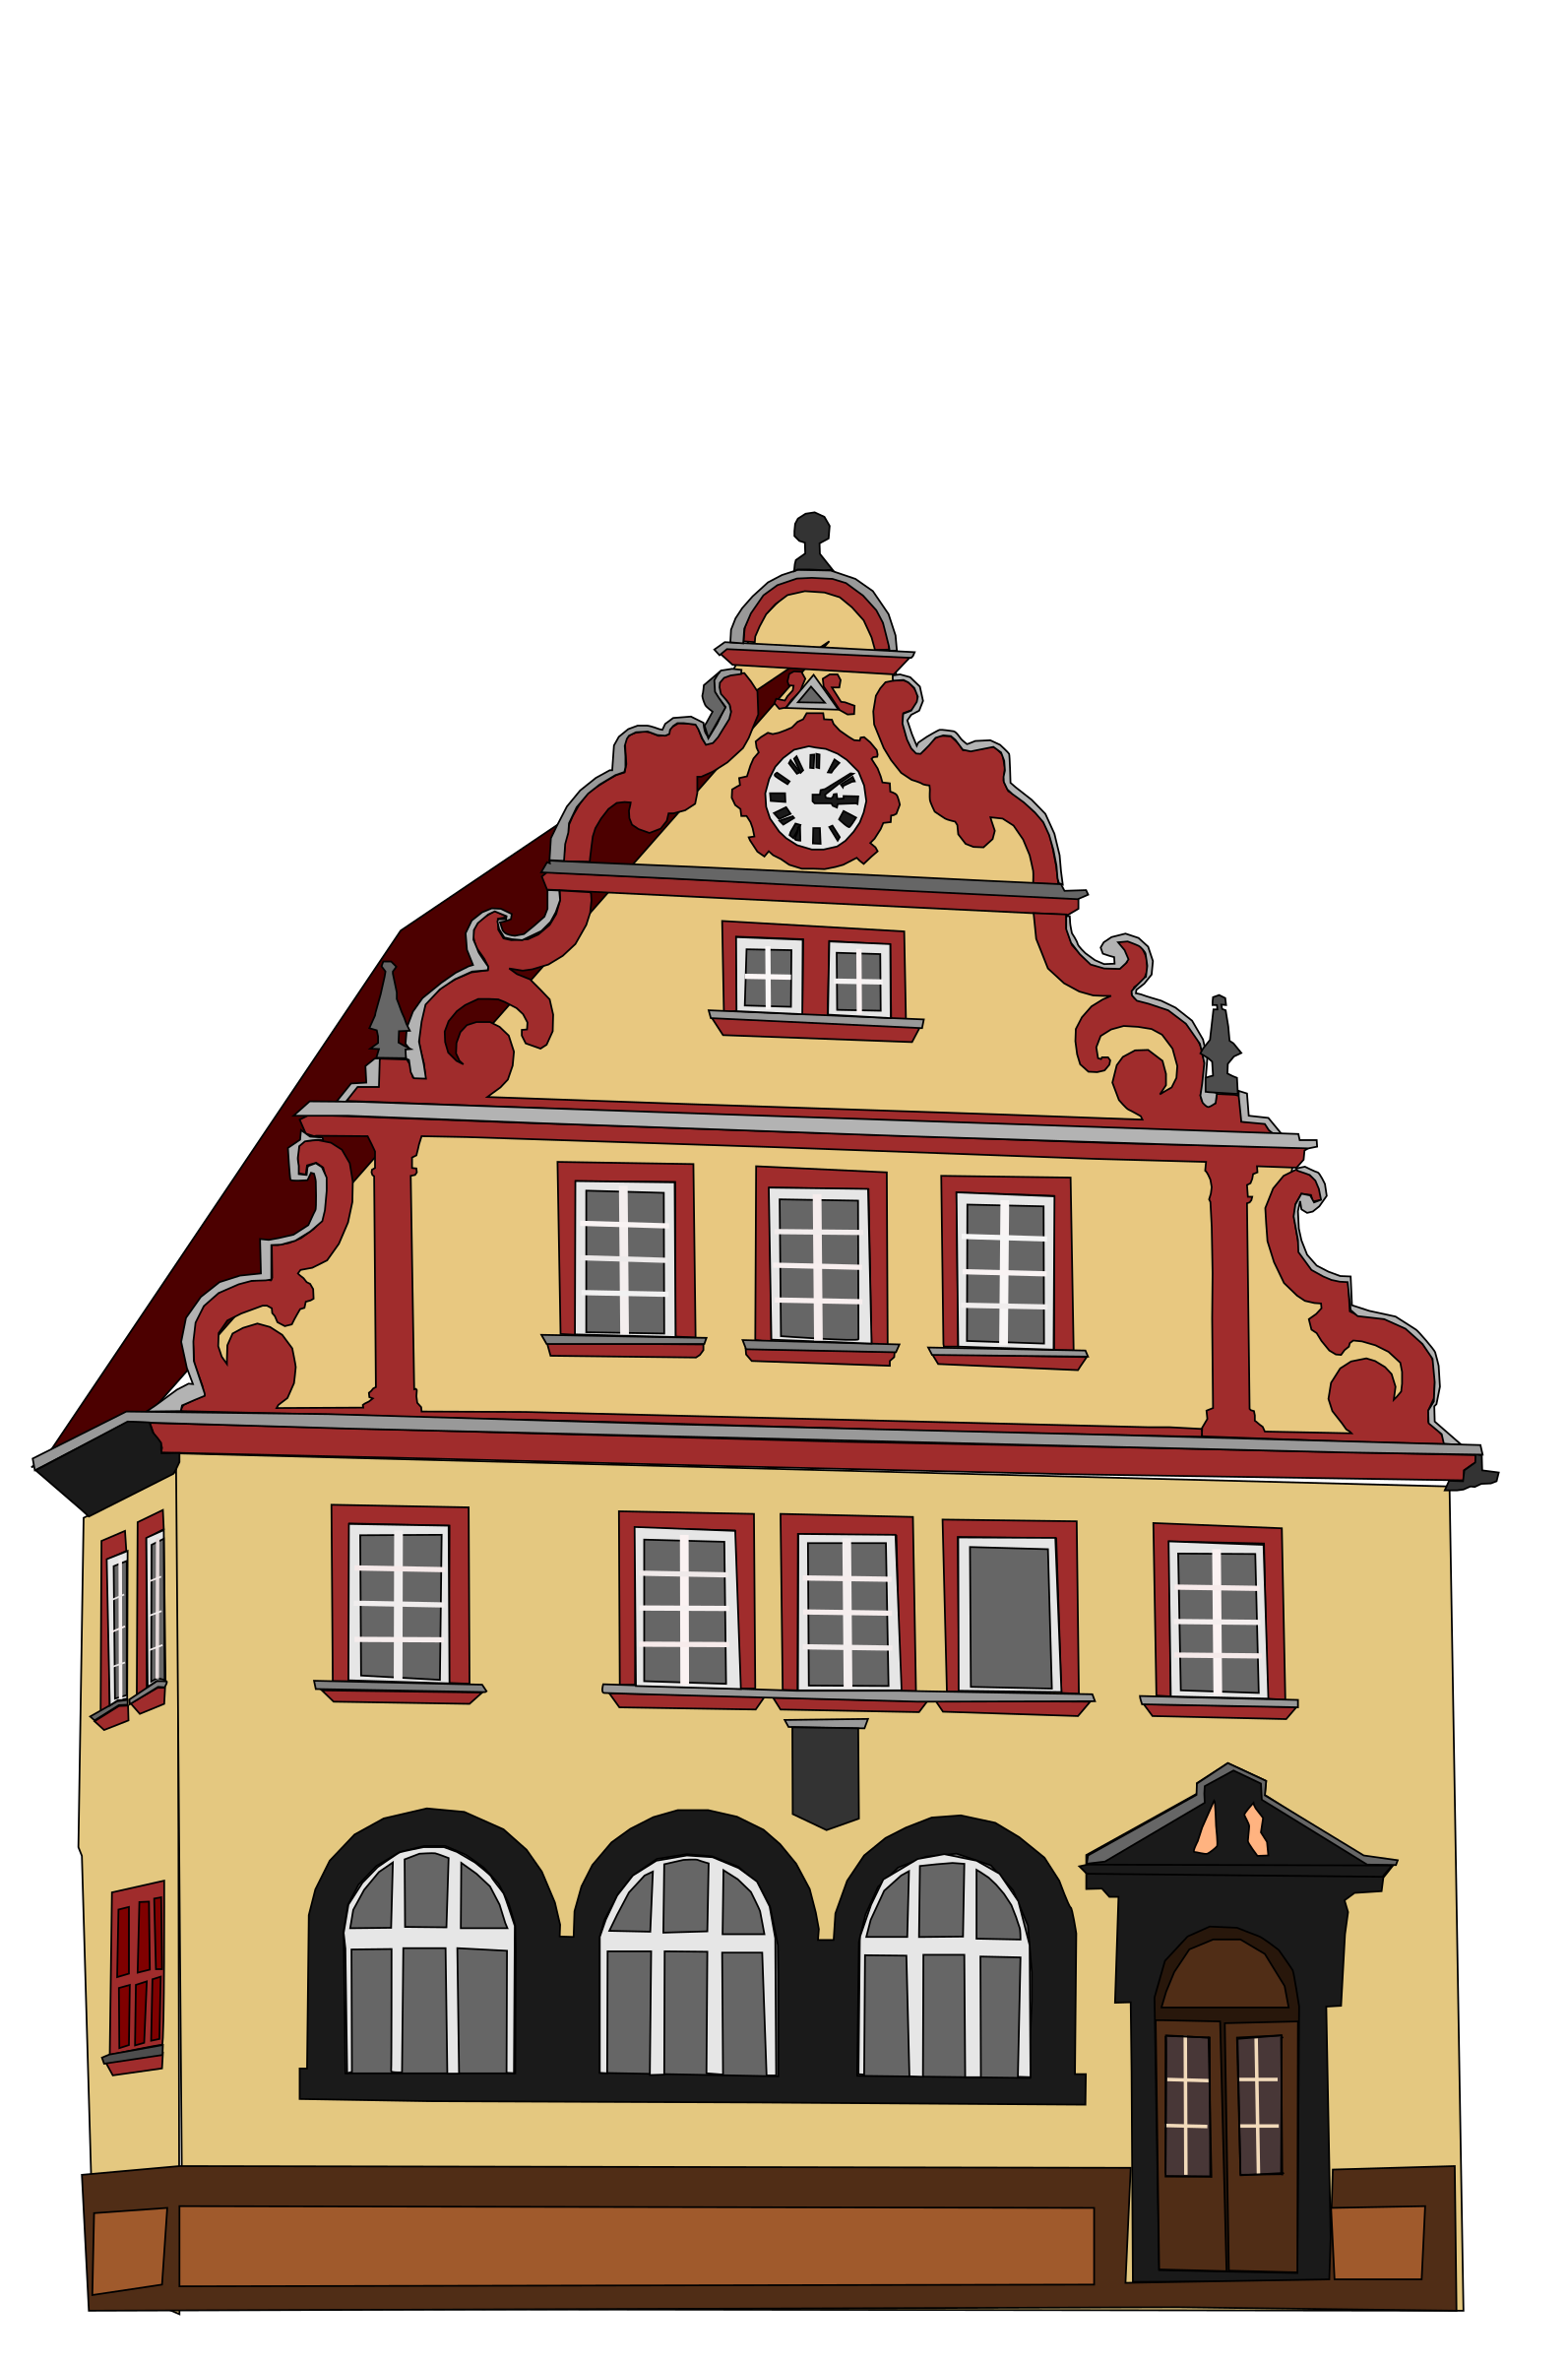 Town Hall Bad Rodach by binameusl